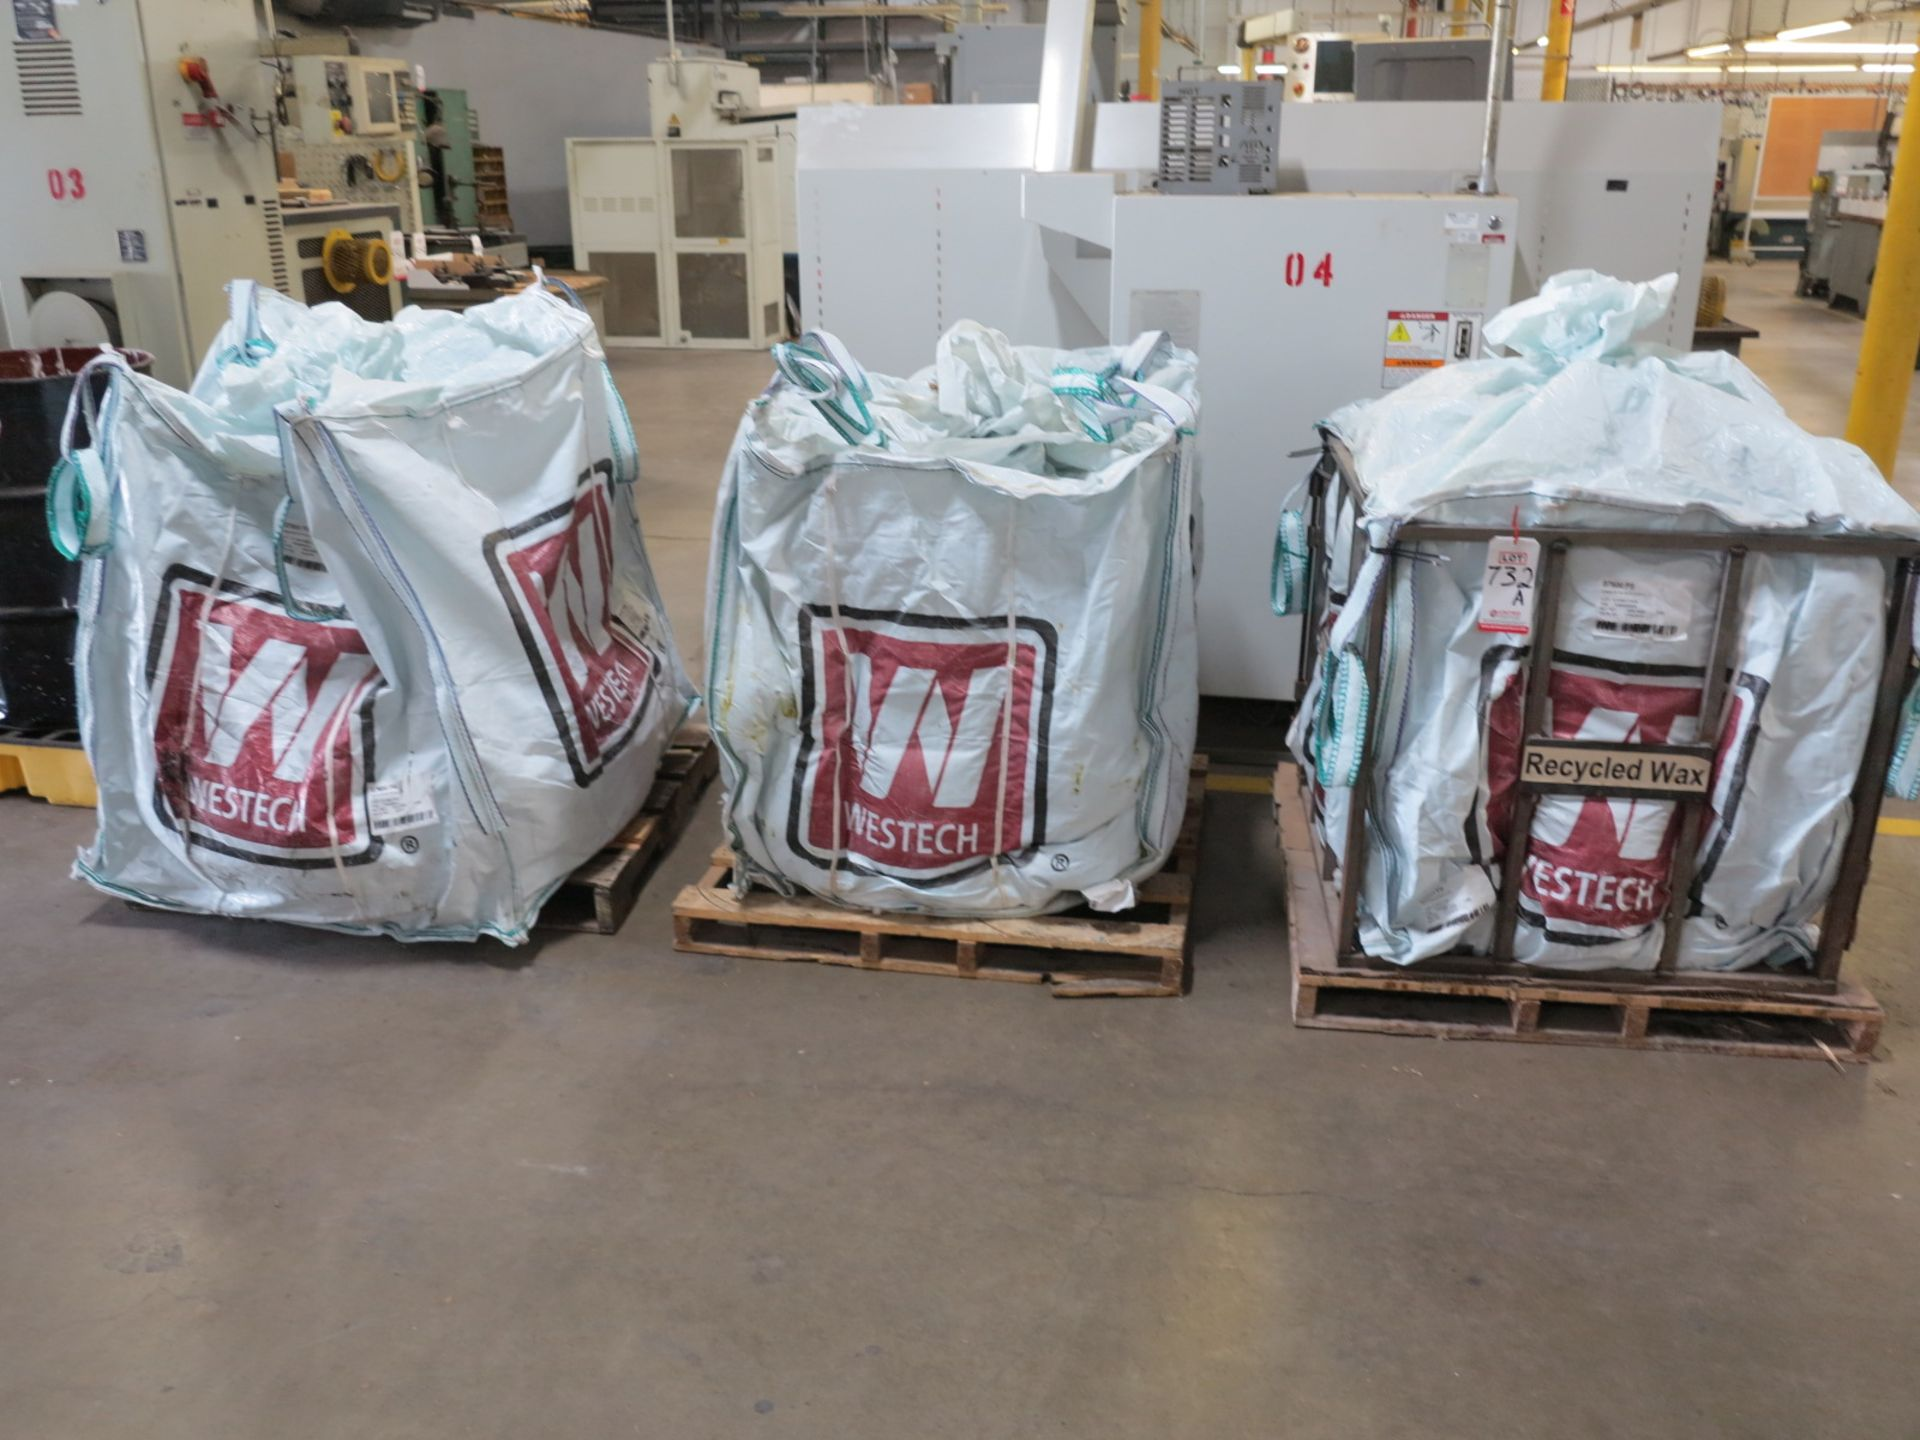 Lot 732A - LOT - (3) PALLETS OF MOLDING WAX, NEEDS TO BE RECYCLED